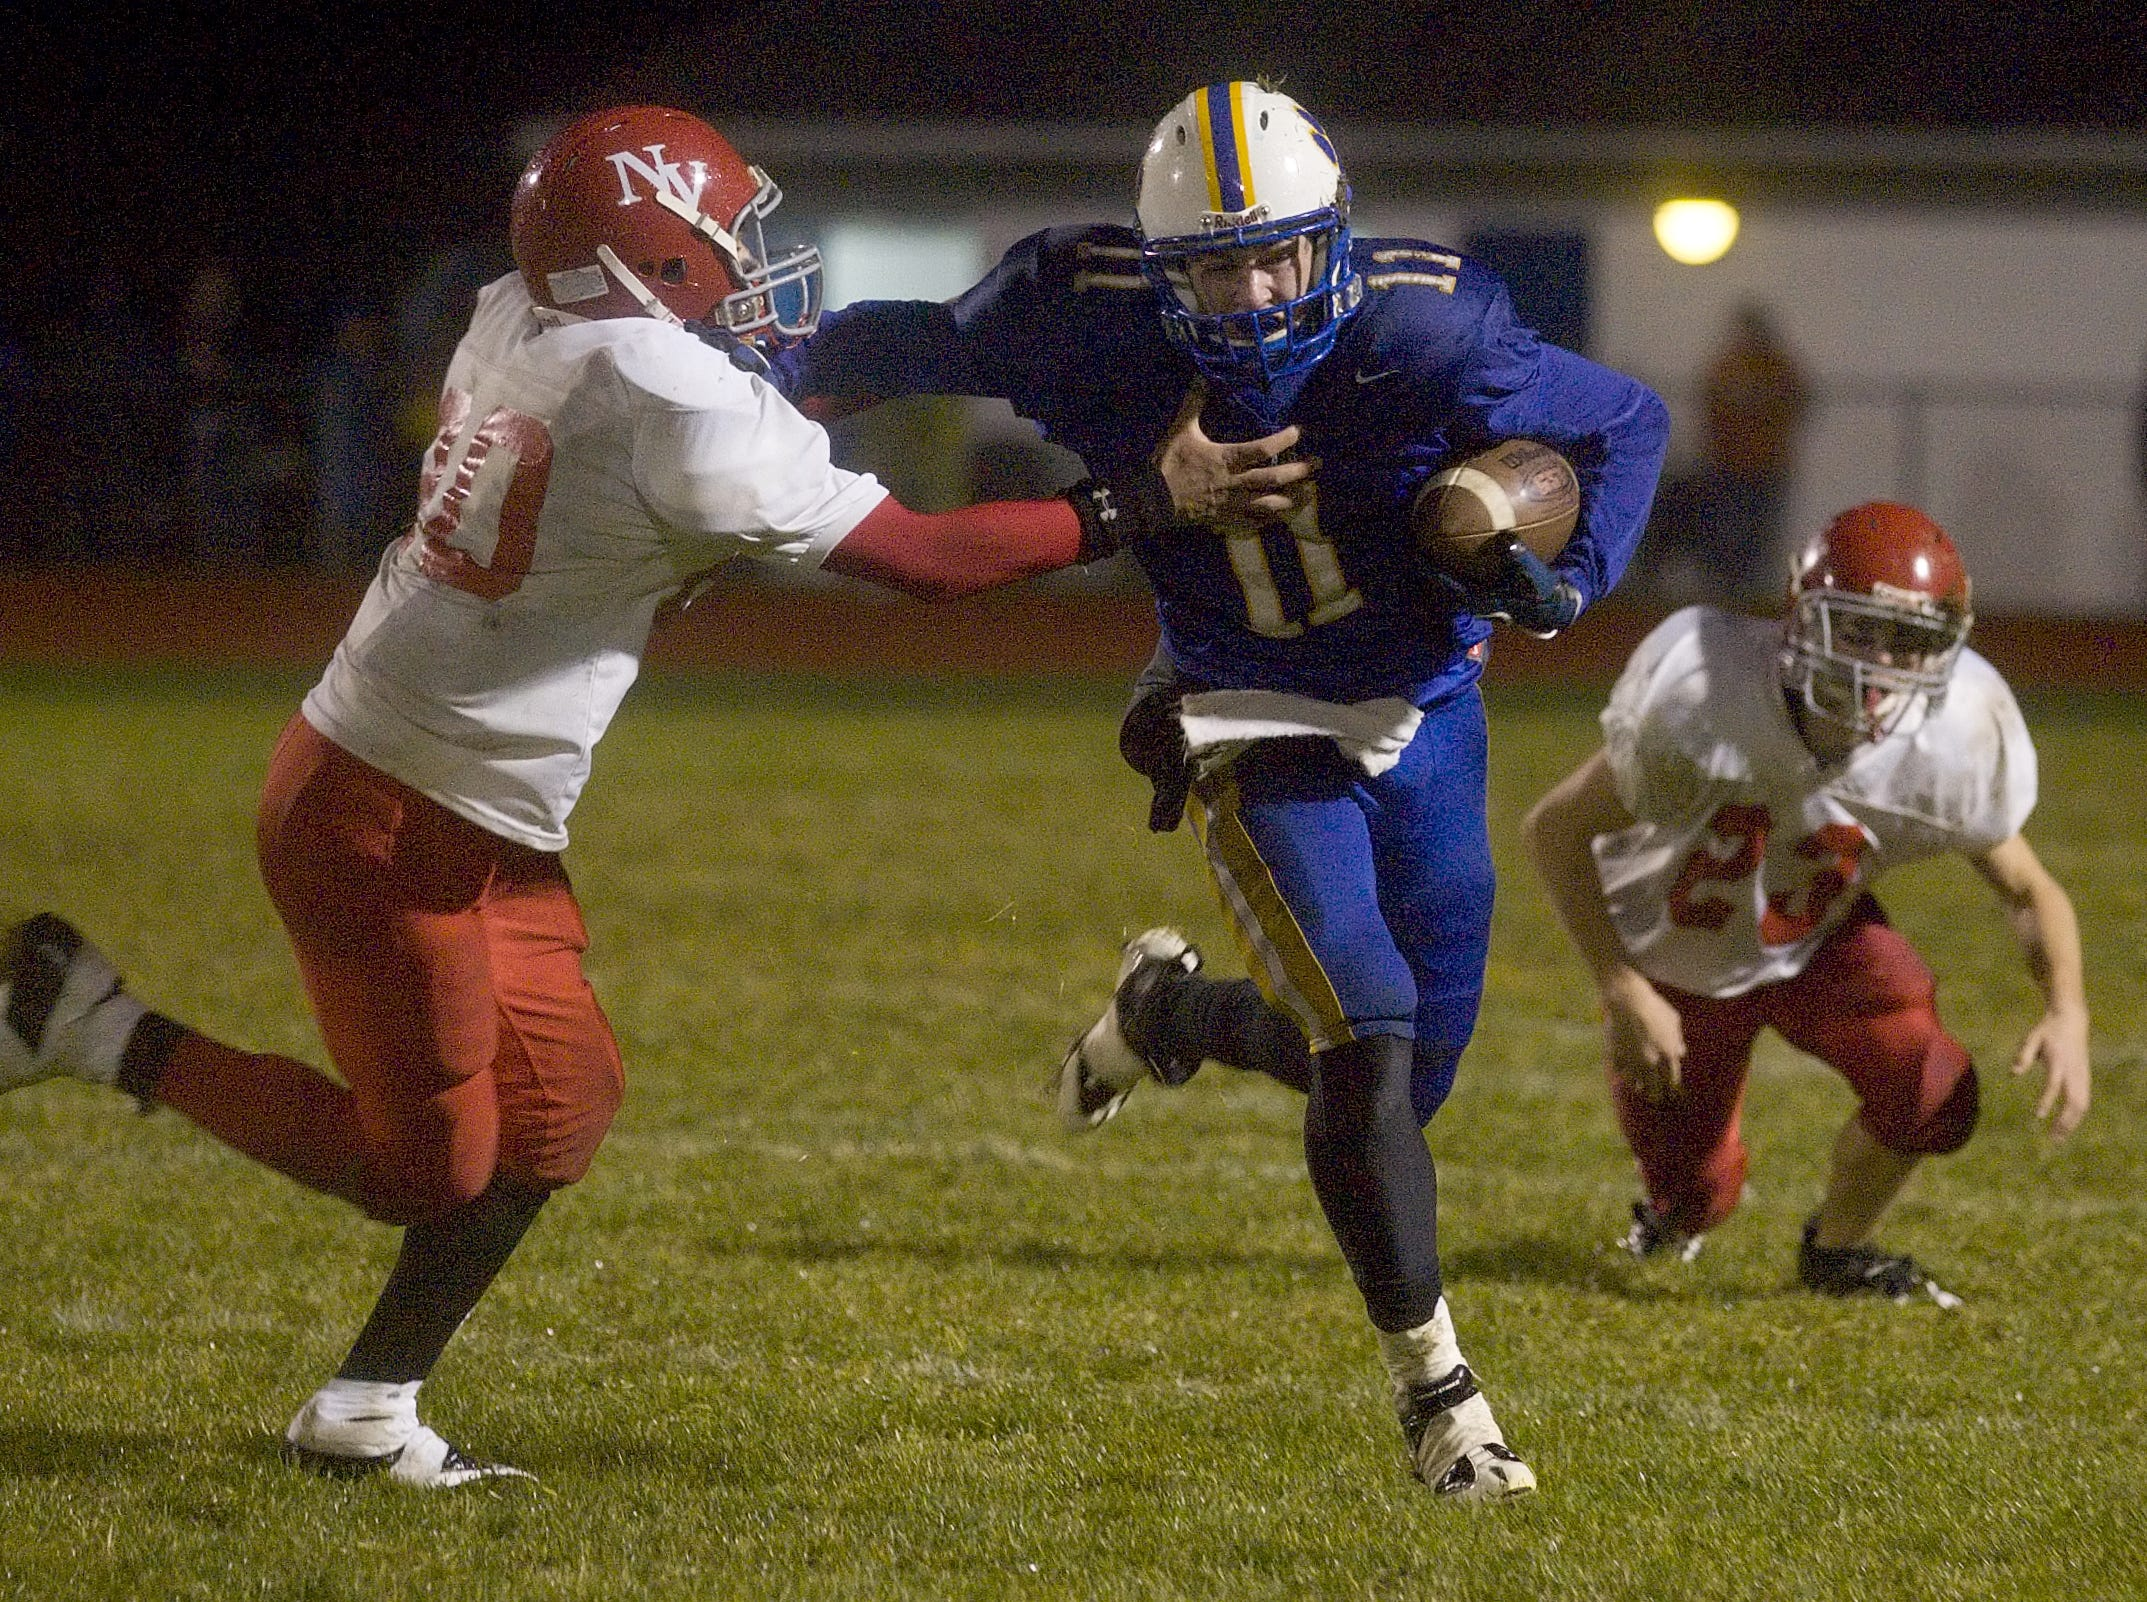 From 2009: Newark Valley's Christian Tapia left attempts to tackle Lansing's TJ Cretney center with Newark Valley's John Stagg trailing on the play during the second quarter of the game on Friday at Lansing.